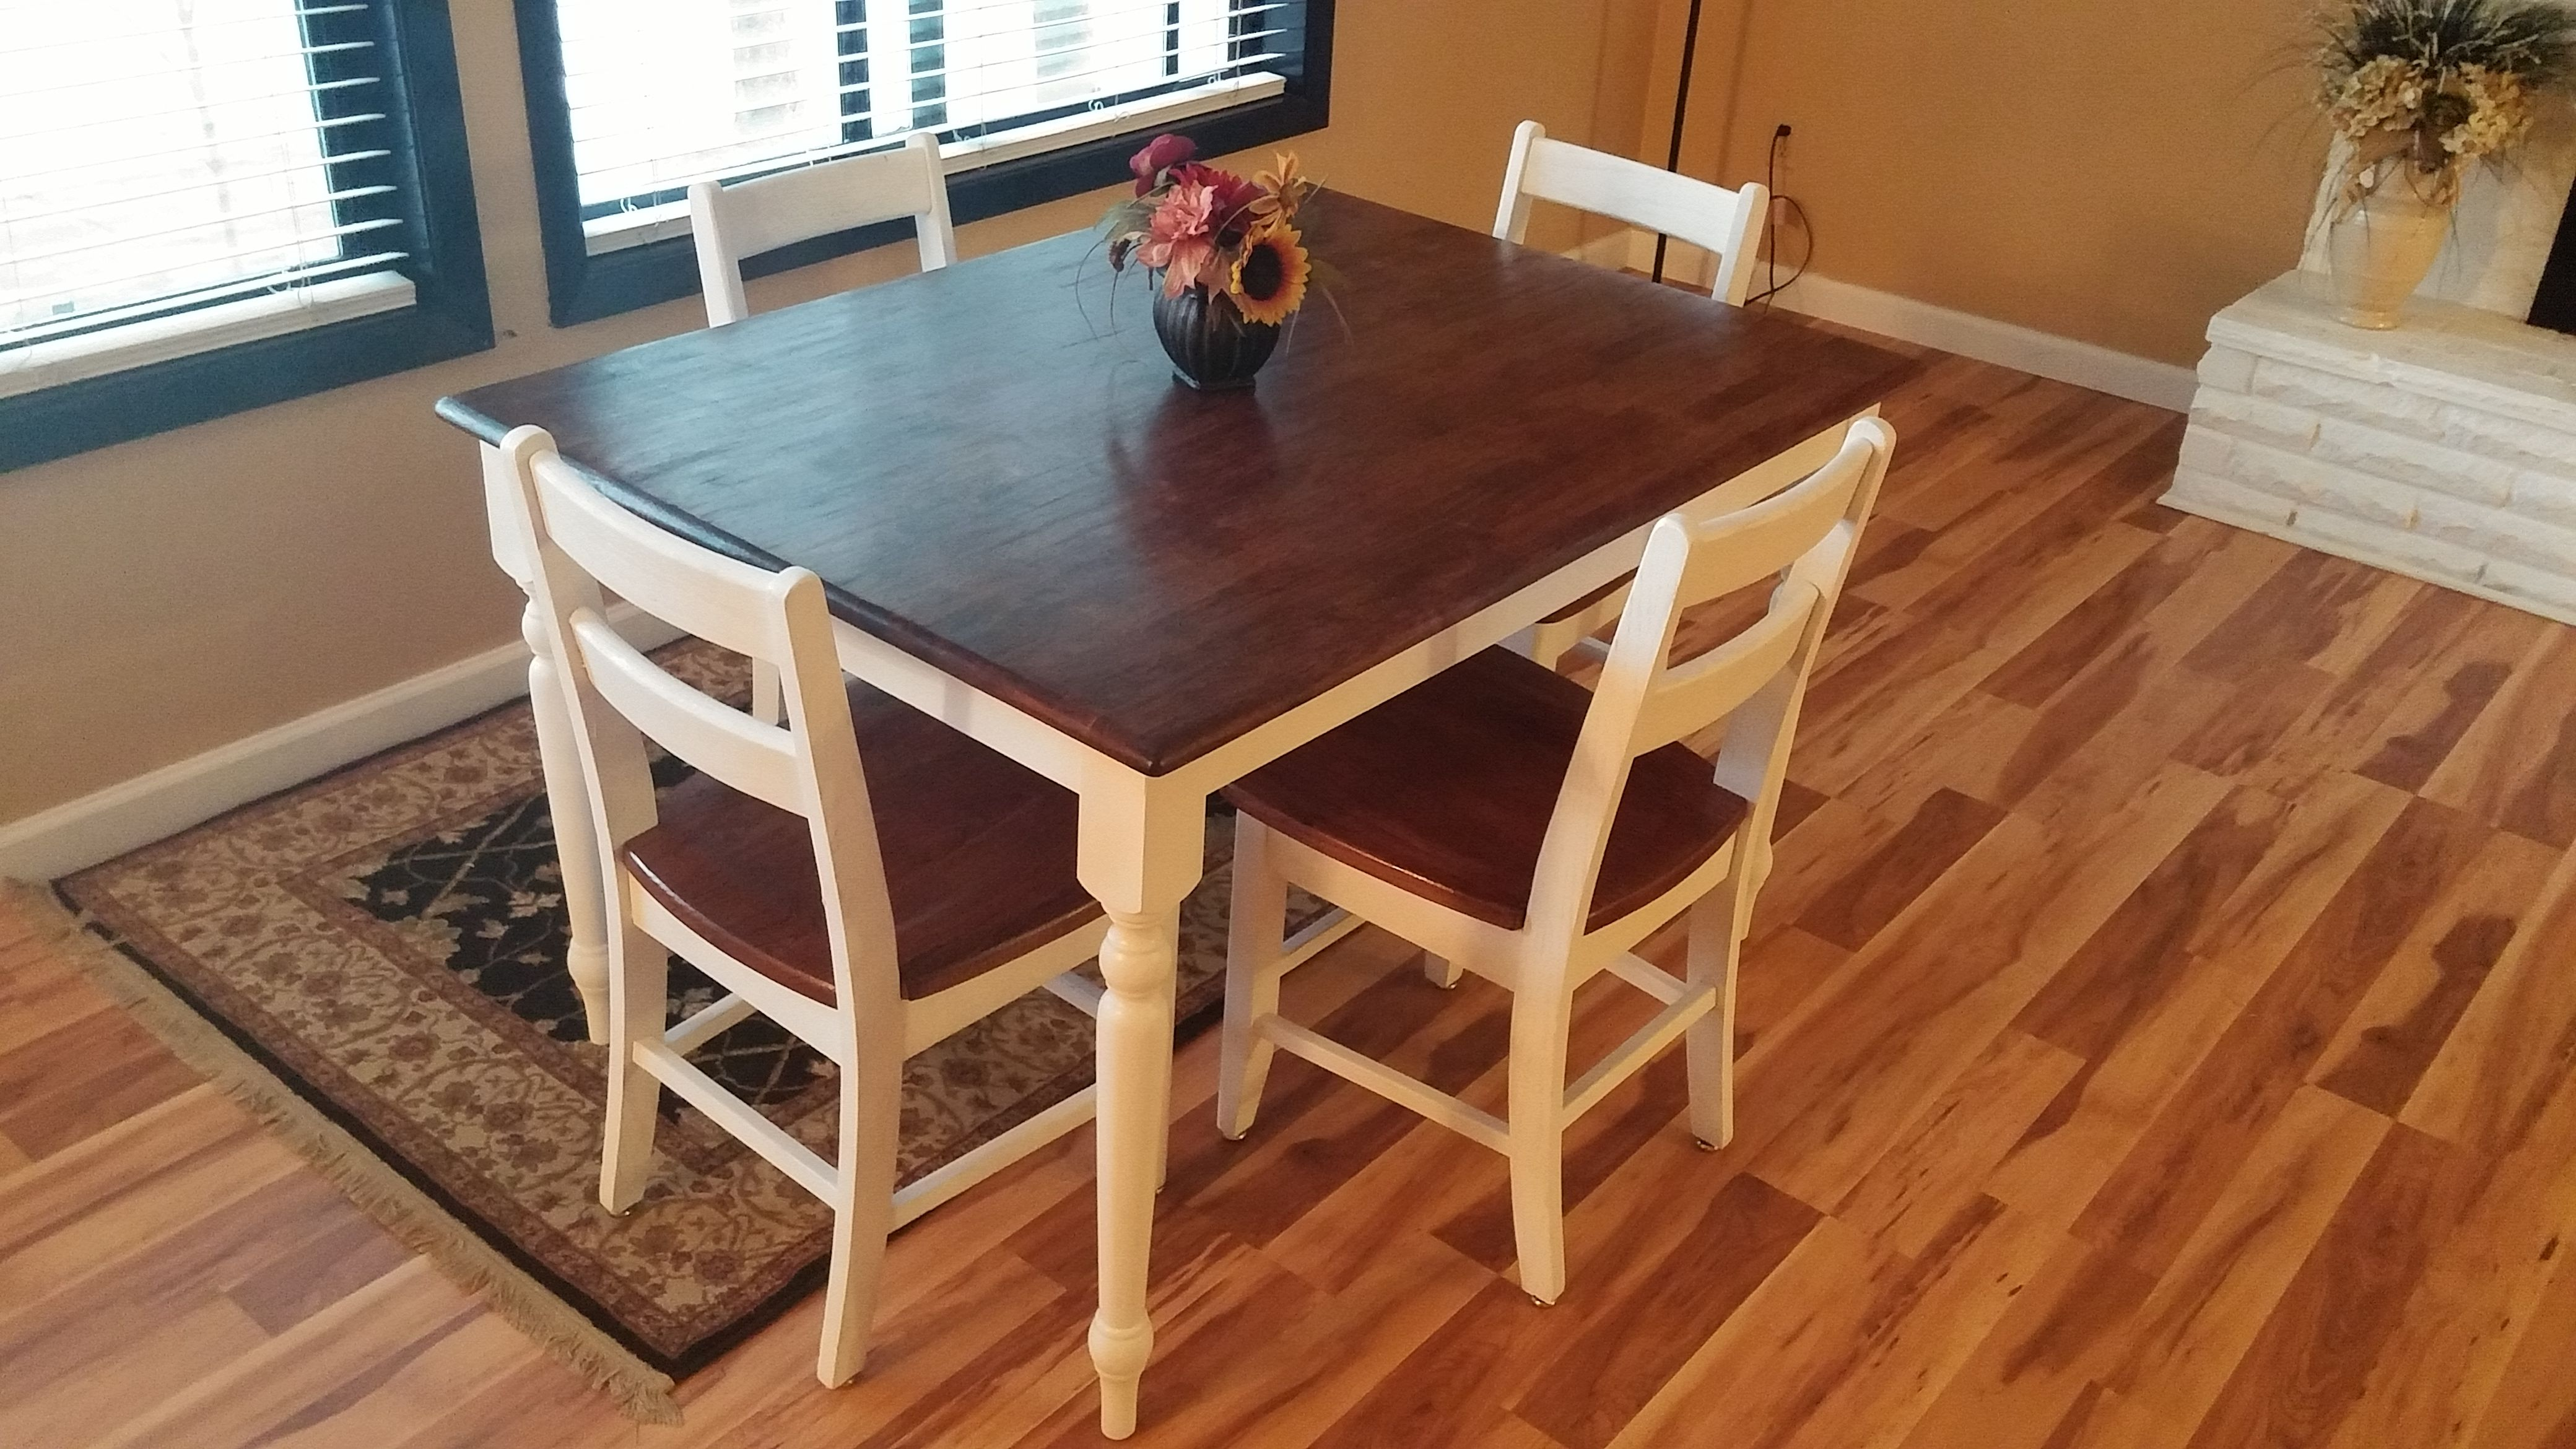 Rustic Farmhouse Table Brown Stained Top White Painted Legs 6 Chairs Seats